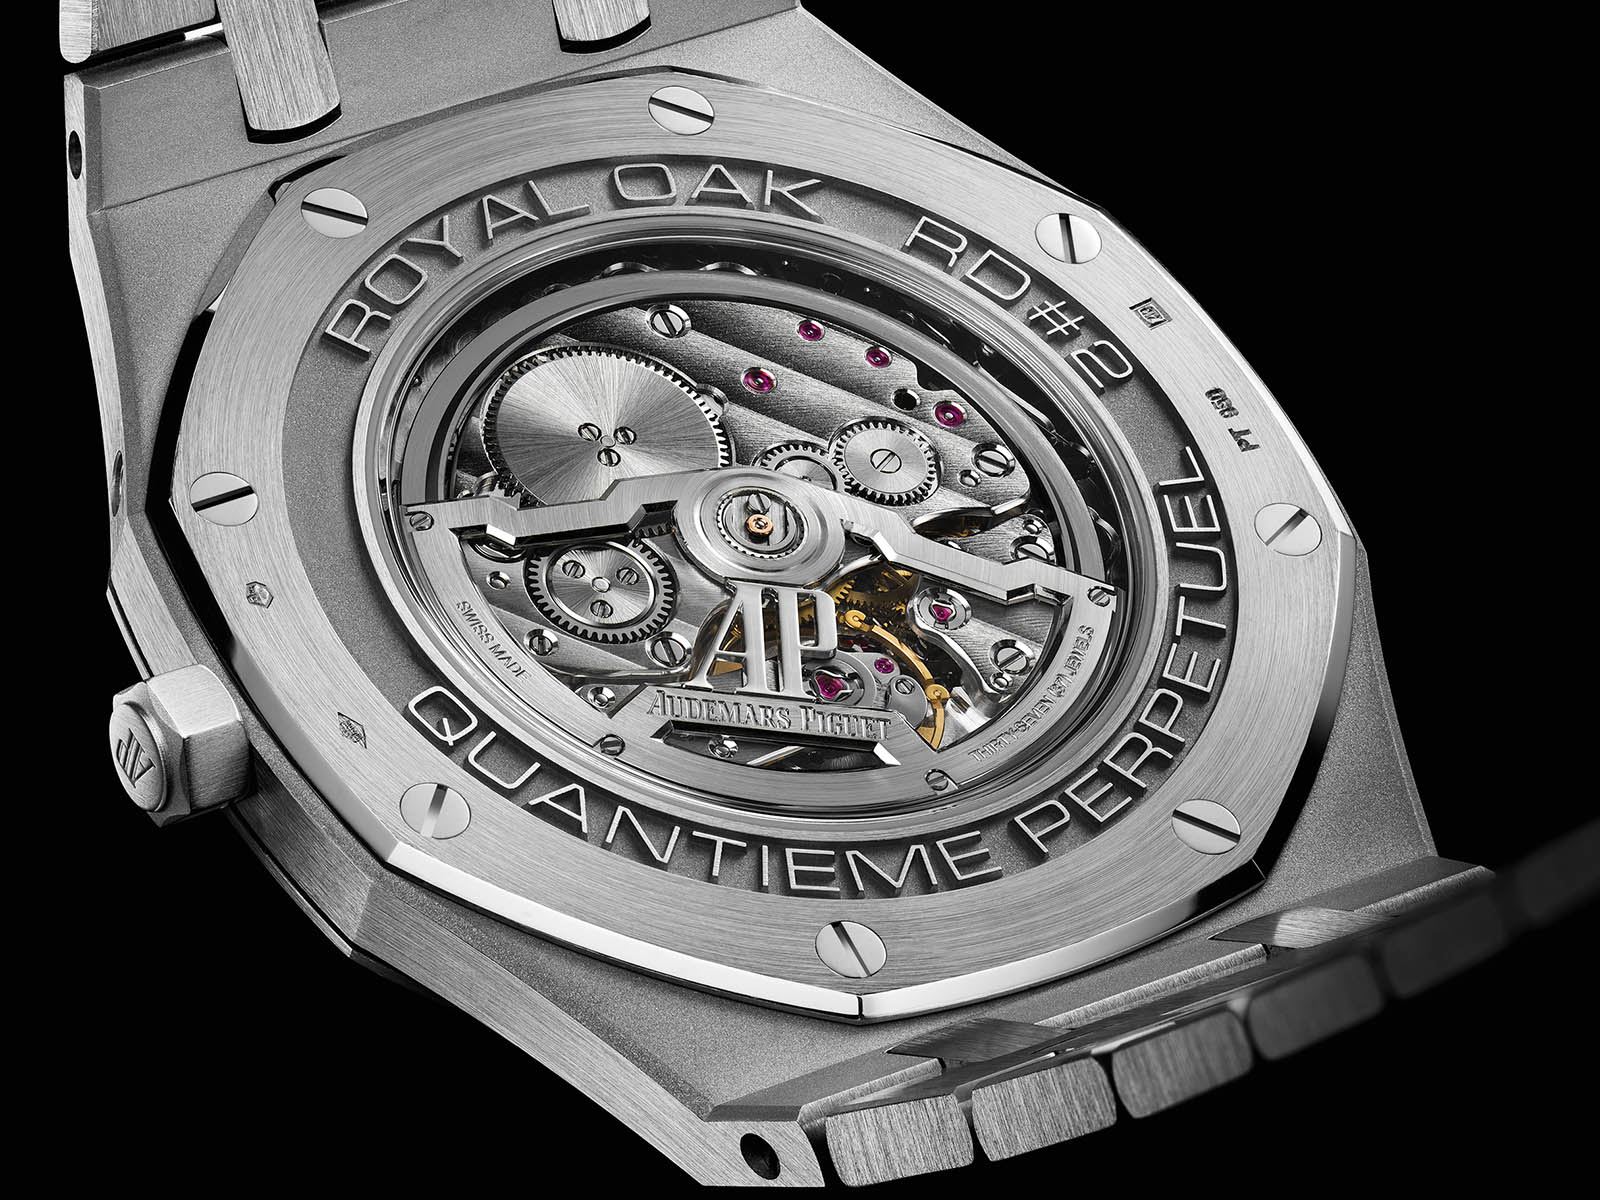 audemars-piguet-royal-oak-rd-2-perpetual-chronograph-ultra-thin-1.jpg